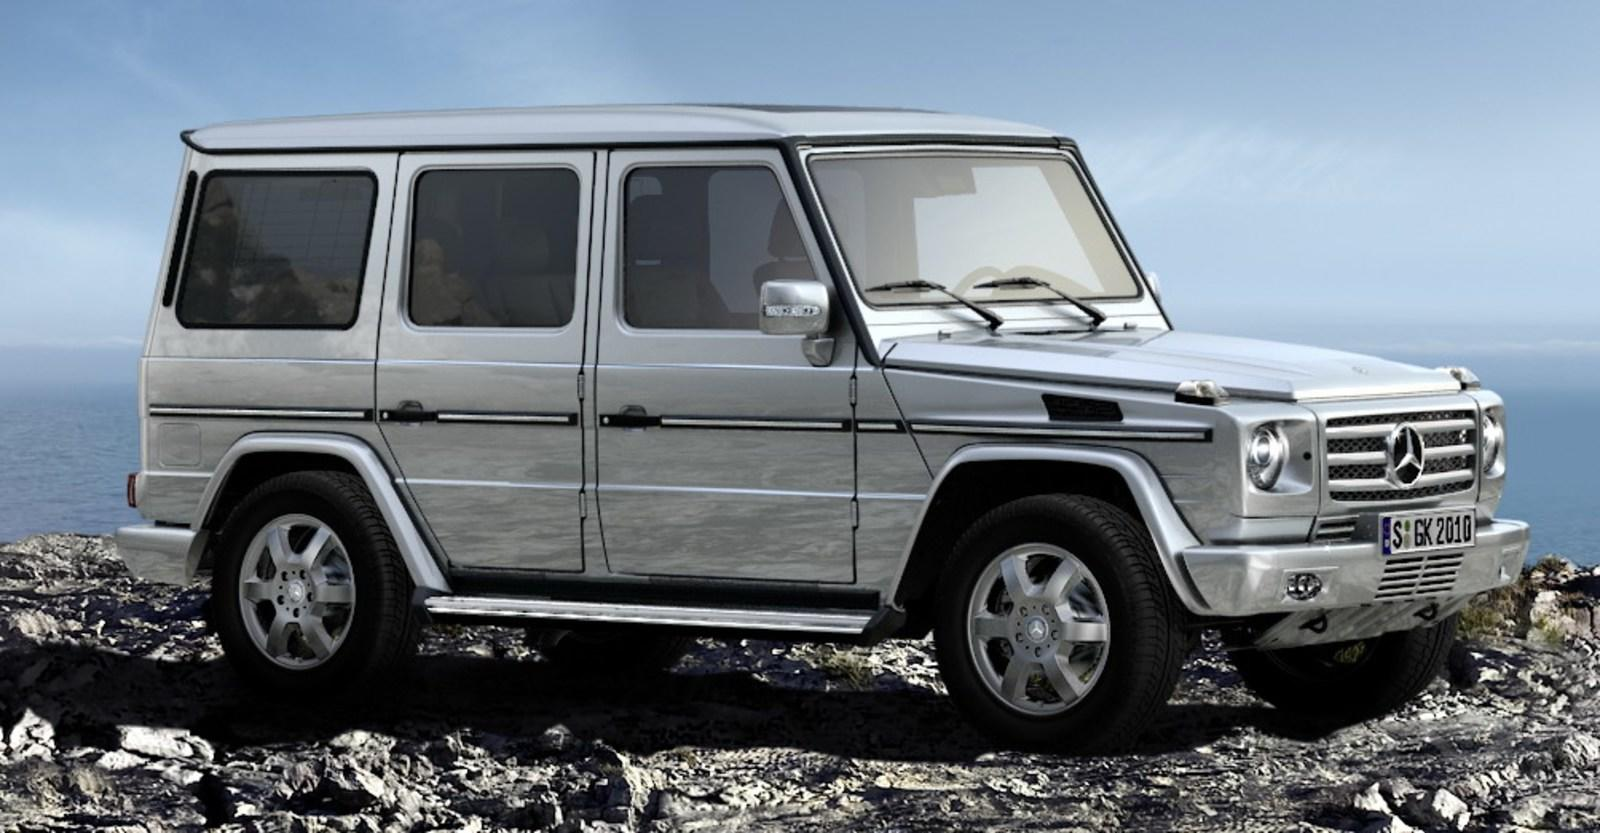 2010 mercedes g350 bluetec review top speed. Black Bedroom Furniture Sets. Home Design Ideas